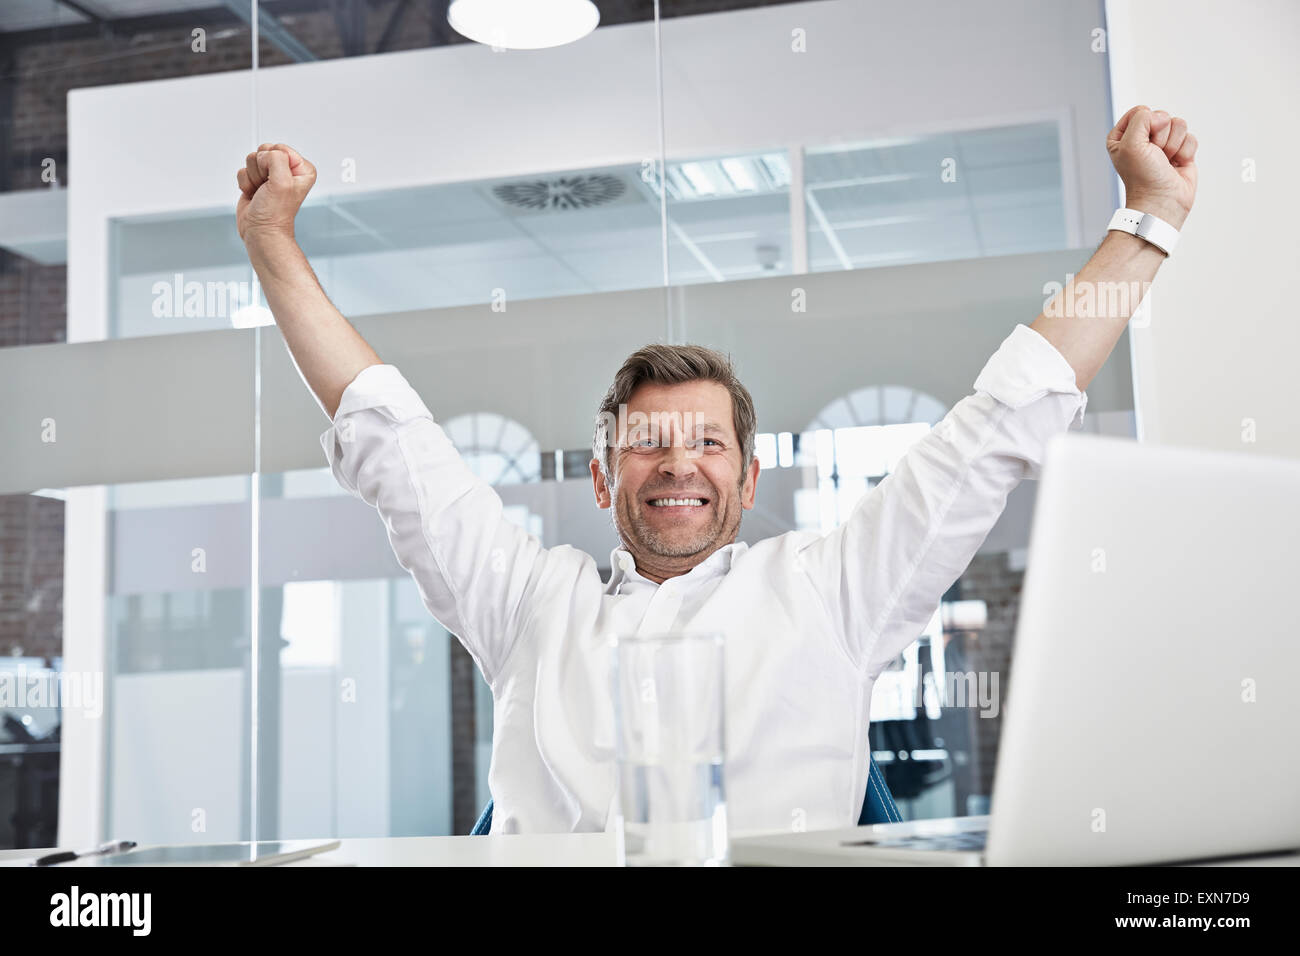 Enthusiastic businessman in office - Stock Image